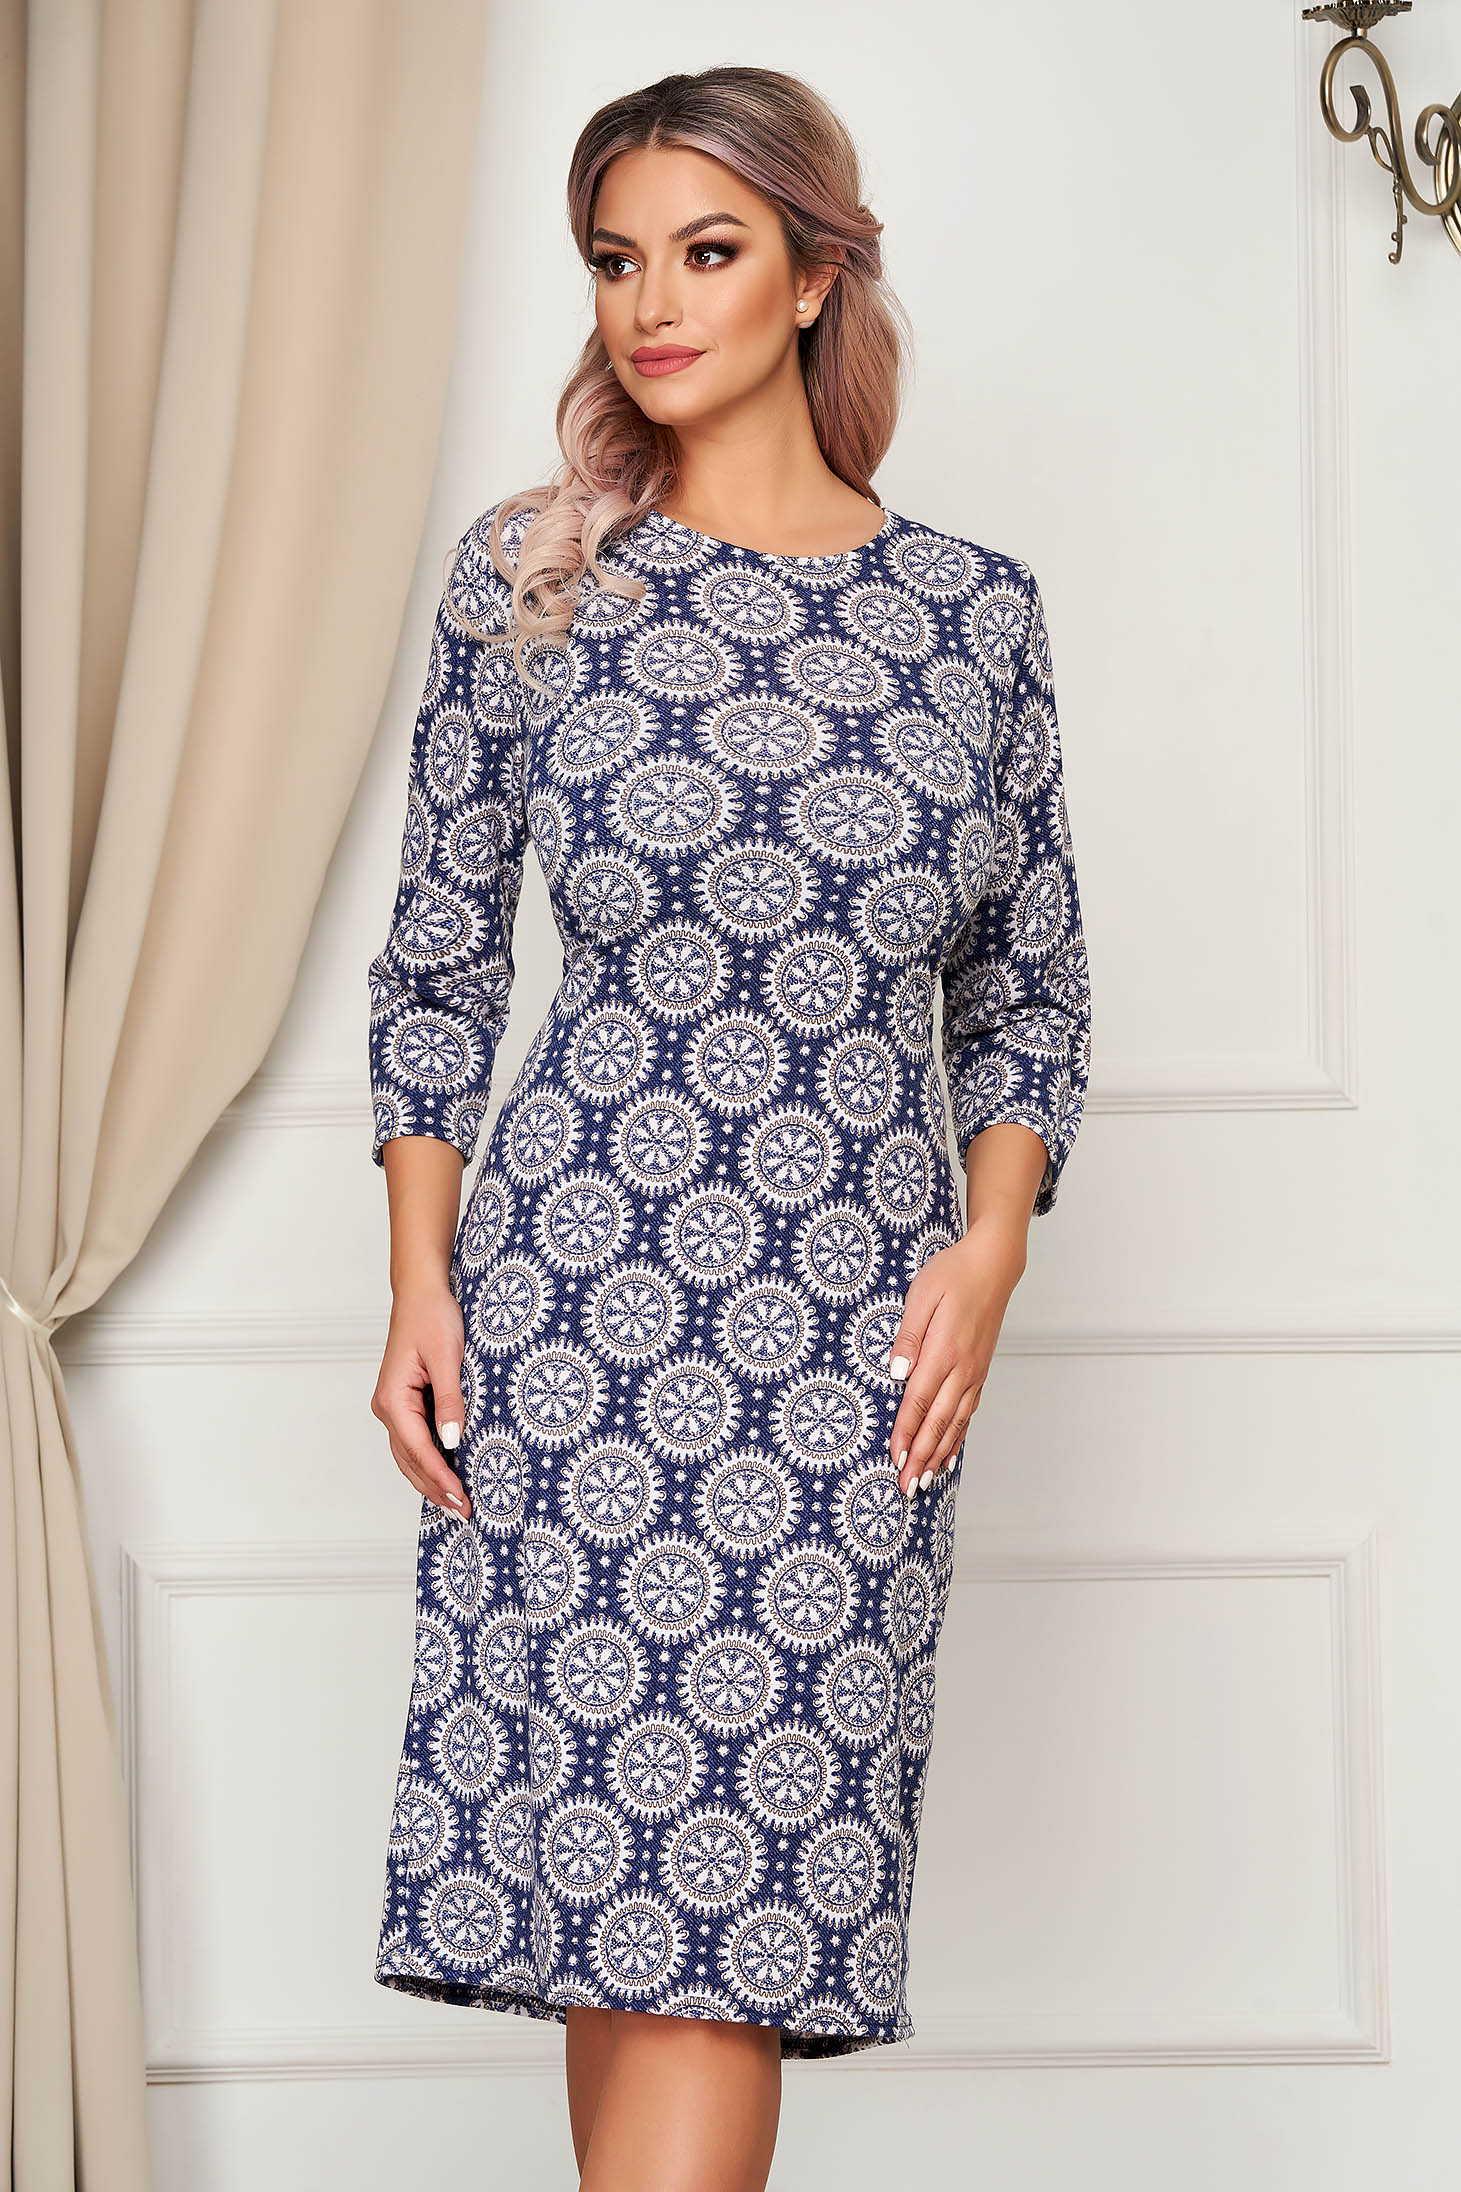 Blue dress midi daily knitted with 3/4 sleeves straight